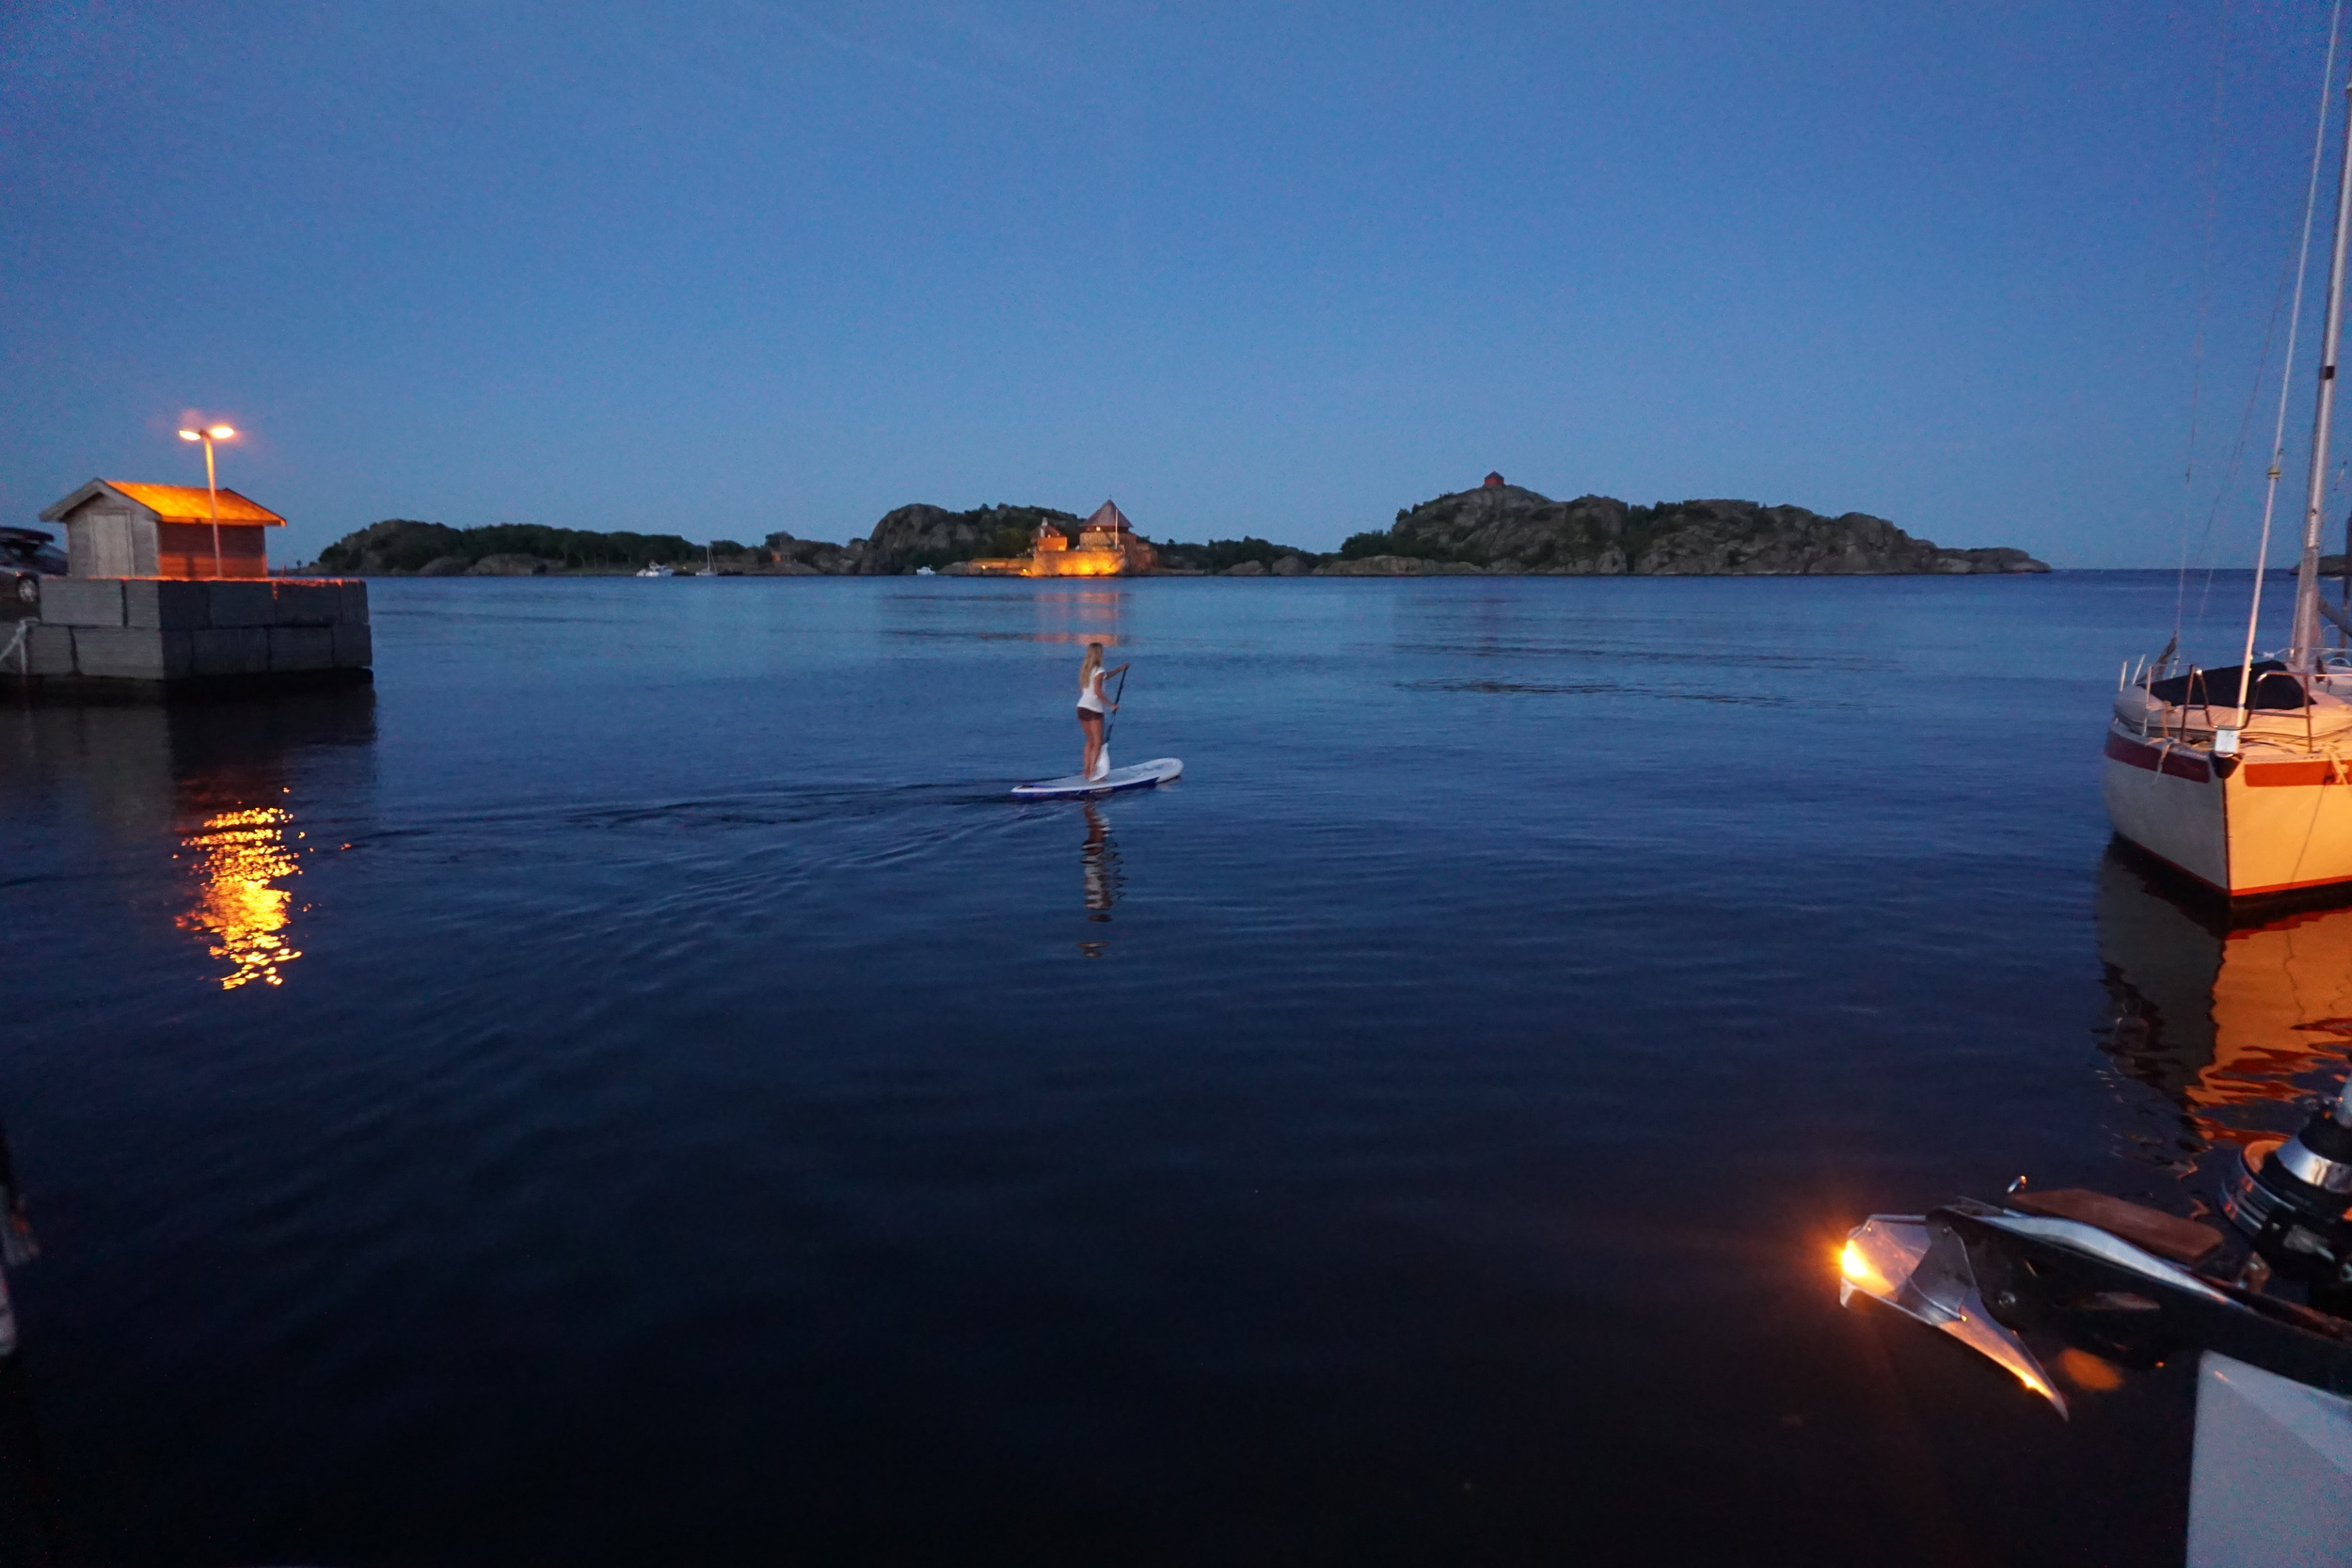 practicing Stand-up paddling in stavern by night.